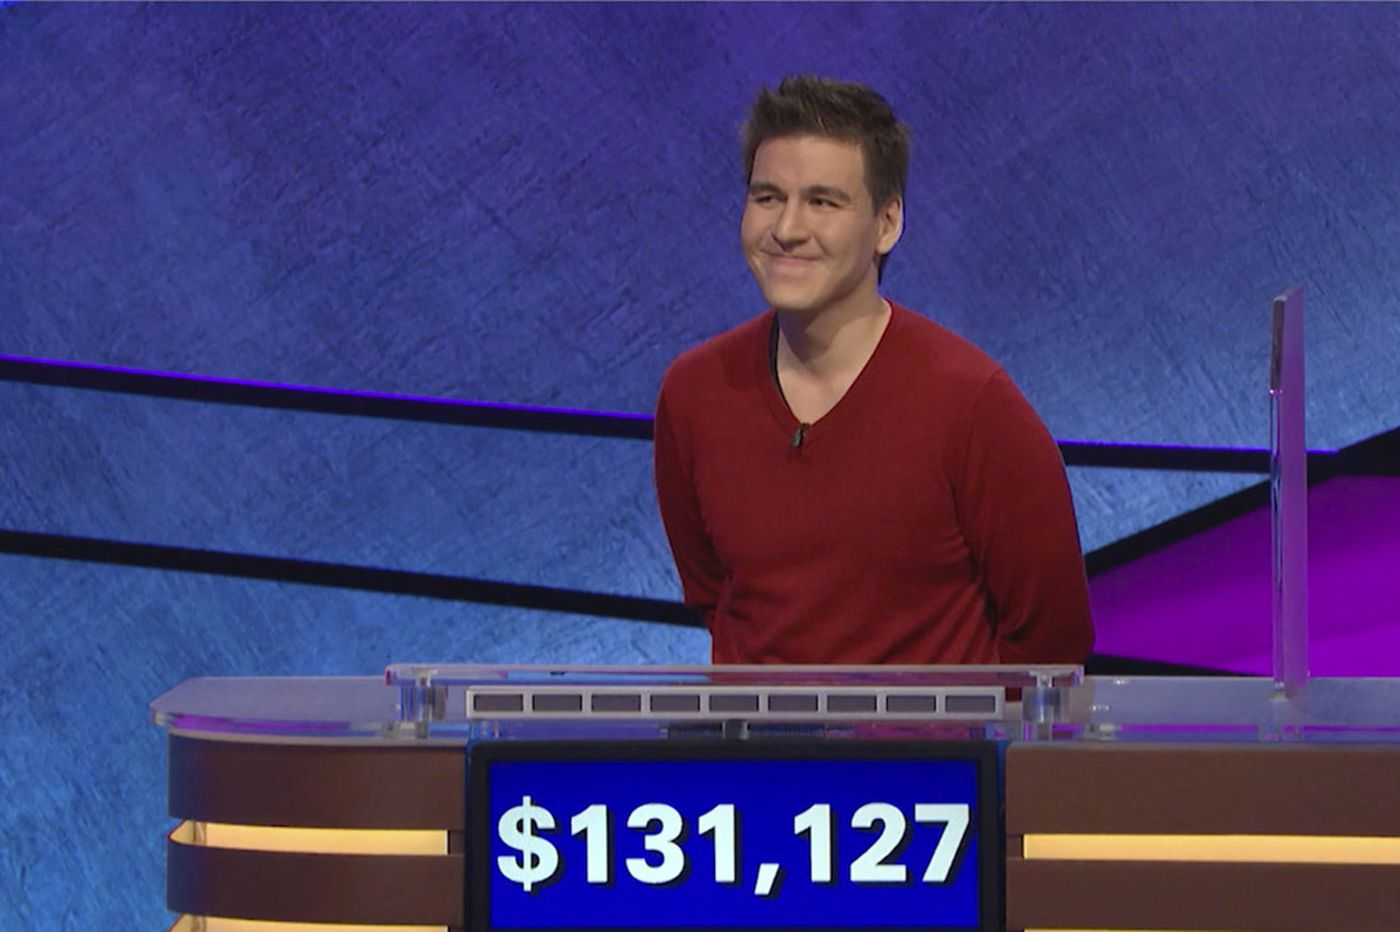 When is Jeopardy! champ James Holzhauer coming back?